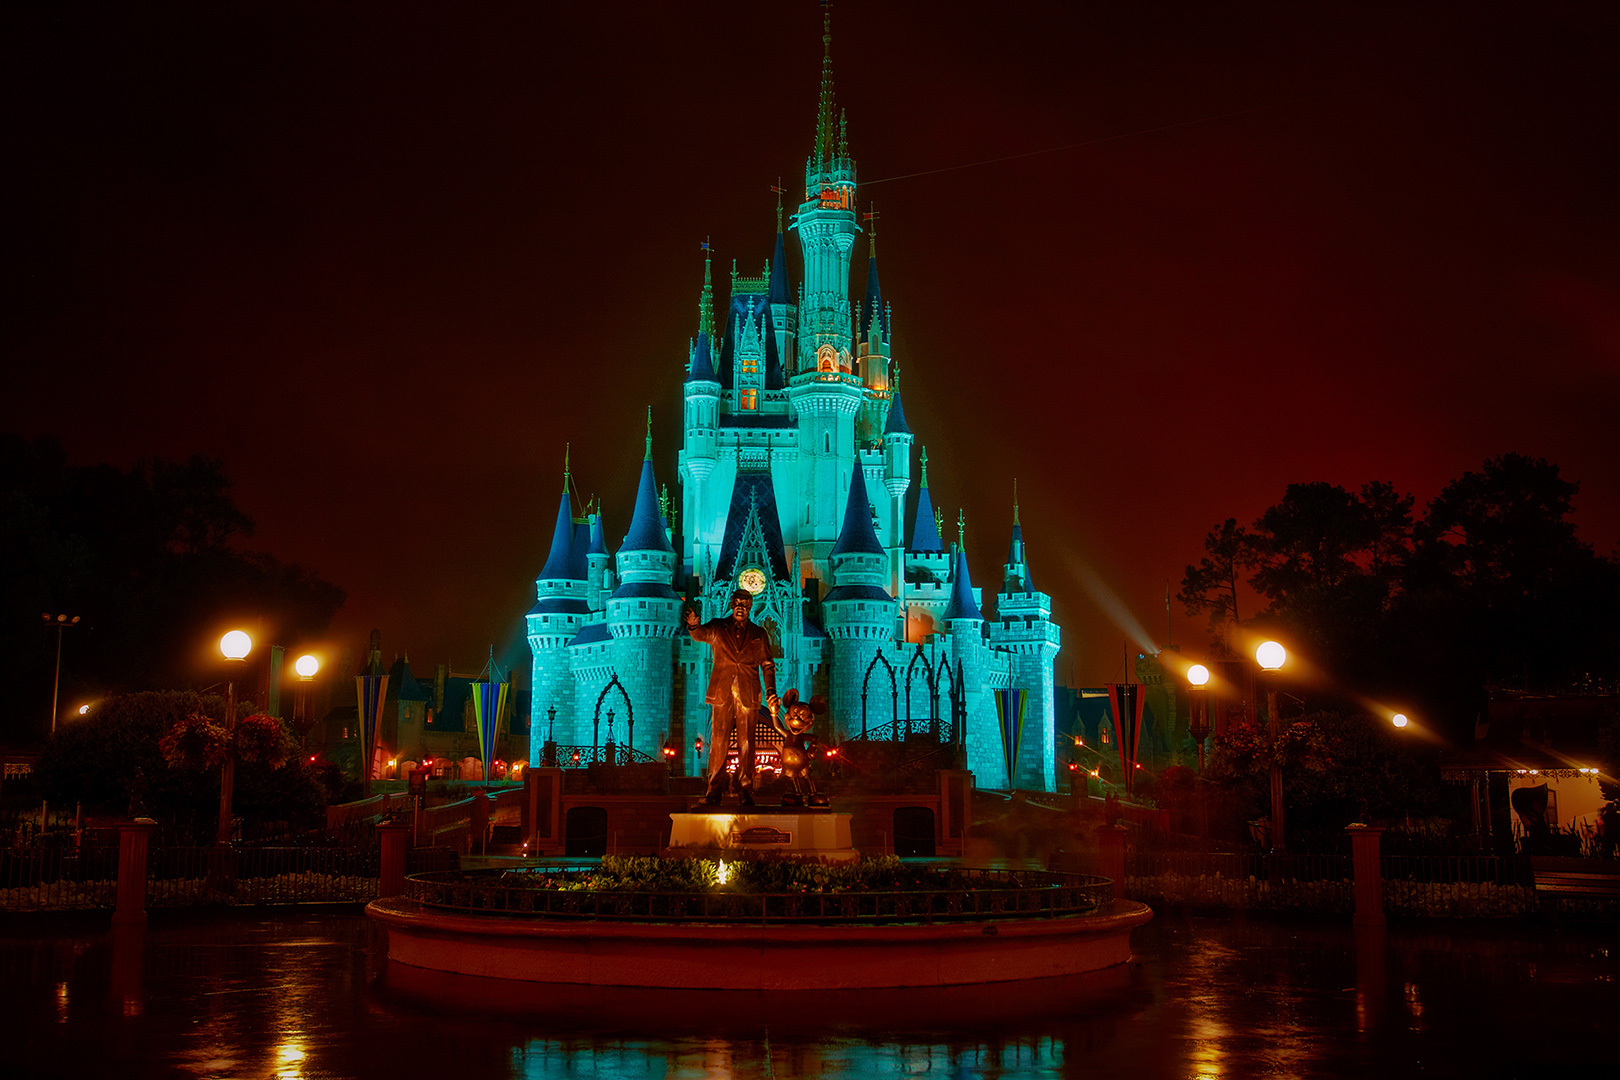 Disney Photography, Disney World Photography, Disneyland Photography, Disney Photos, Disney Pictures, Walt Disney World, The Magic Kingdom, Walt Disney, Mickey Mouse, Orlando, Florida, Theme Park,  Cindarella Castle, Castle